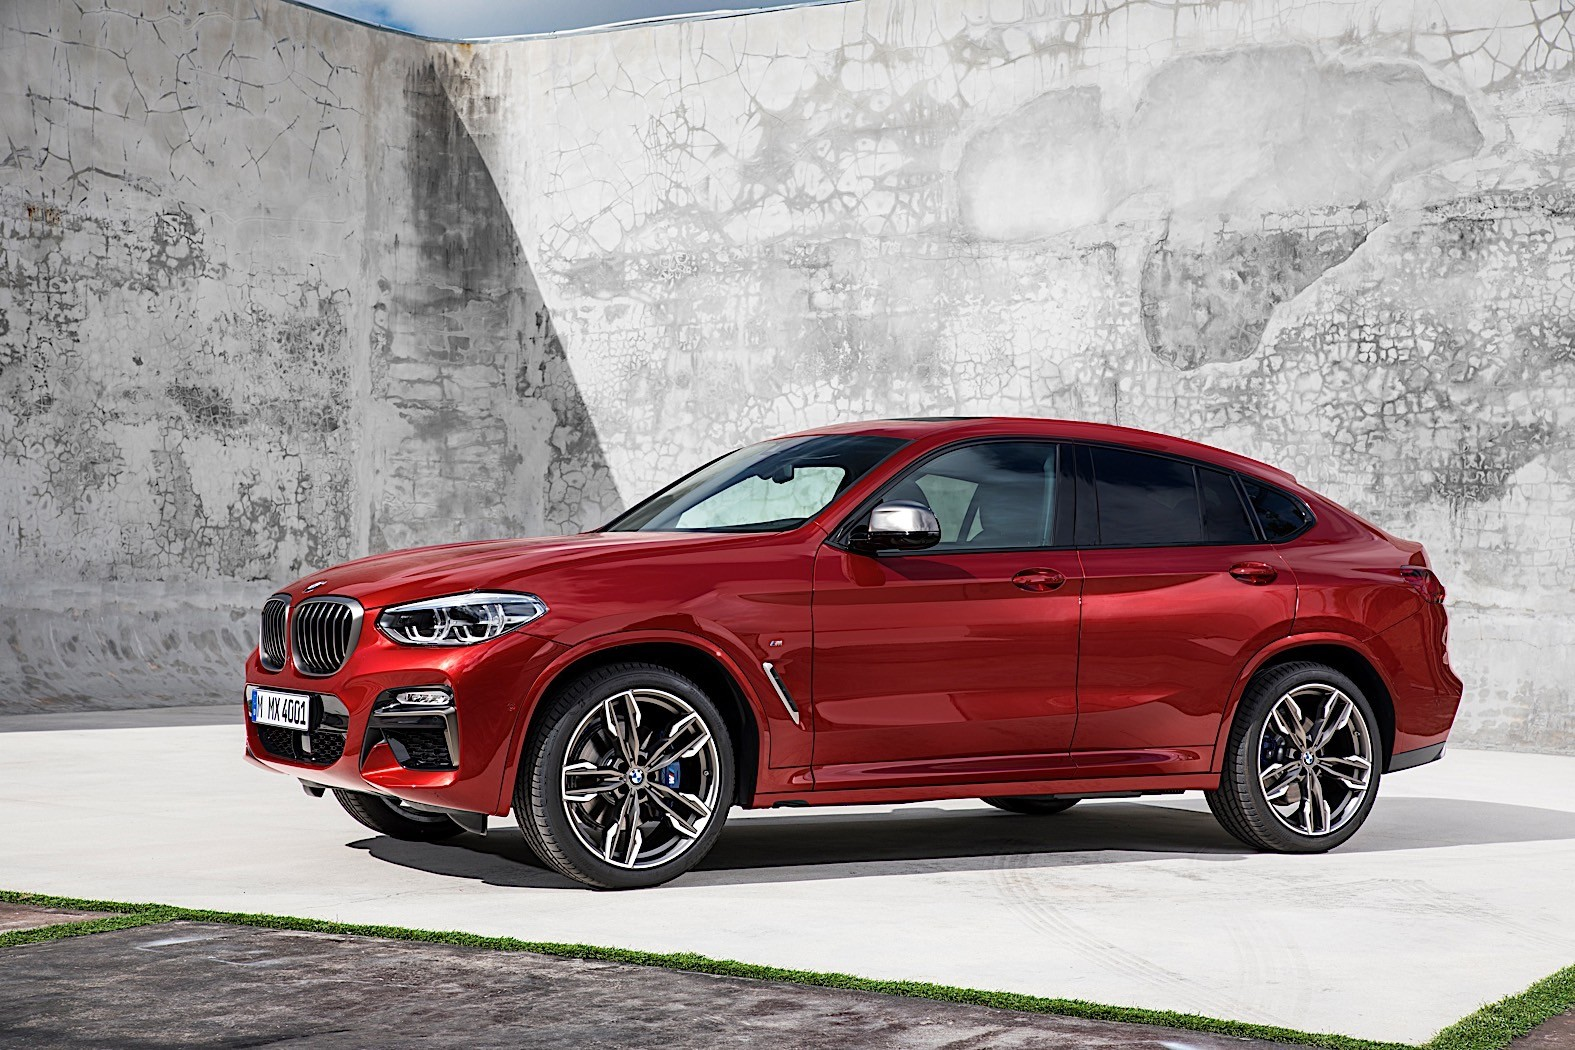 2019 Bmw X4 G02 Rendered Based On All New X3 Autoevolution